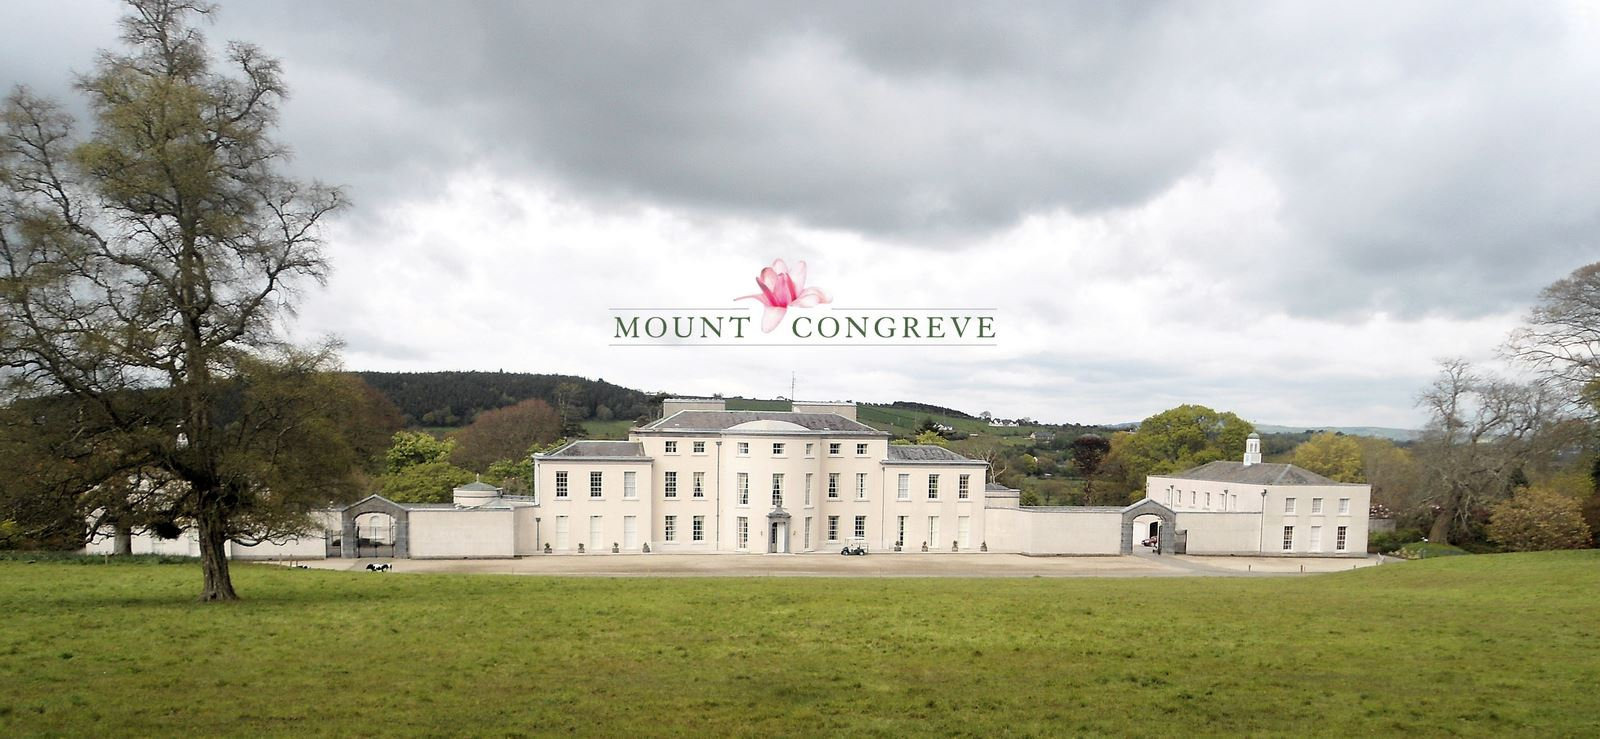 The Déise Greenway Tour kicks off tomorrow - First stop, Mount Congreve Gardens